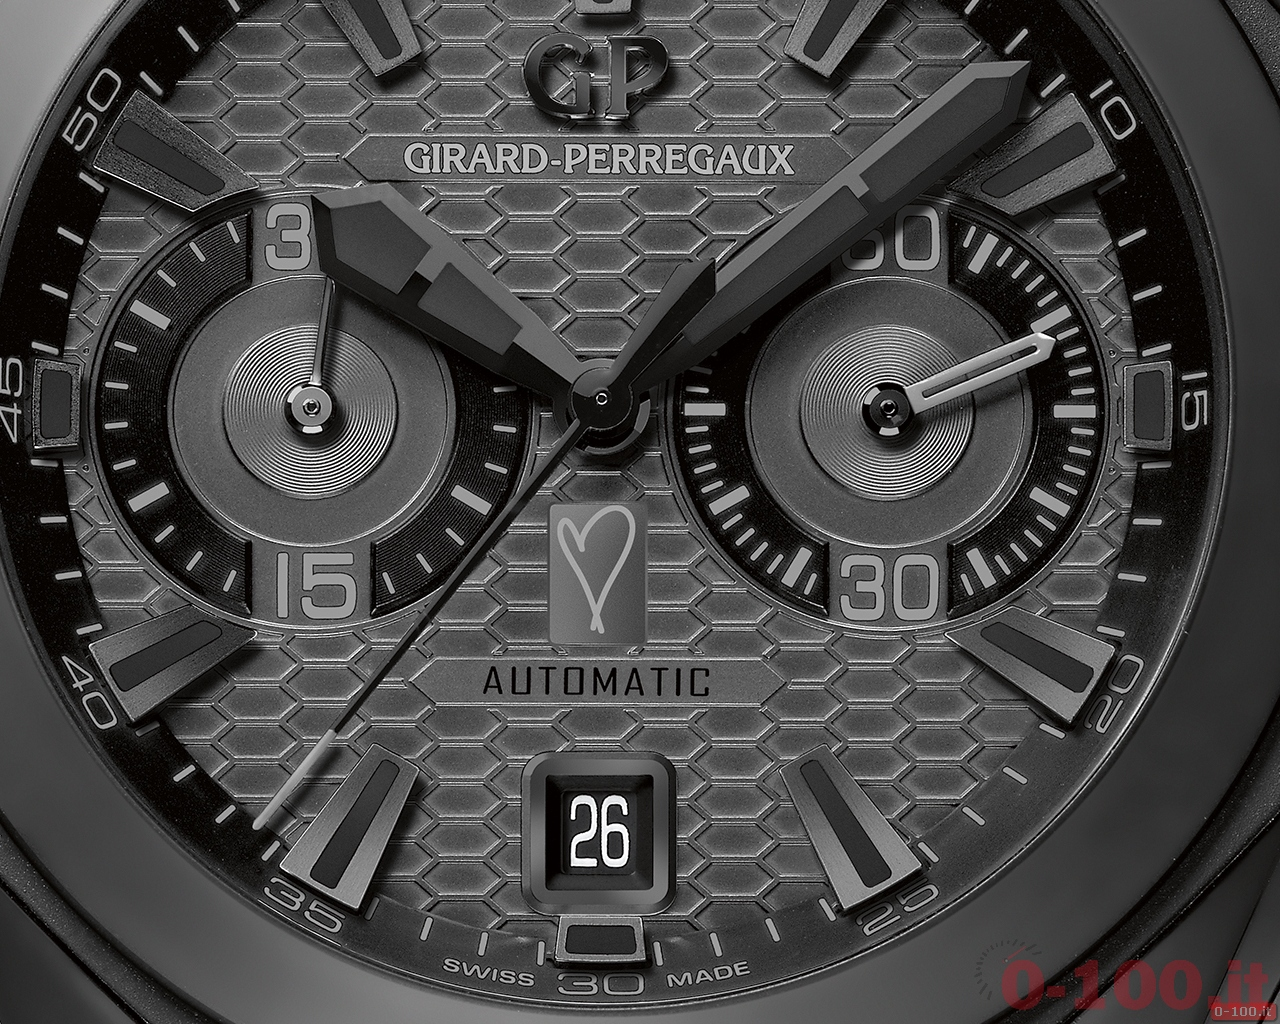 girard-perregaux-shadow-hawk-limited-edition-ref-49970-32-635-fk6a-family-nile-rodgers-0-100_3